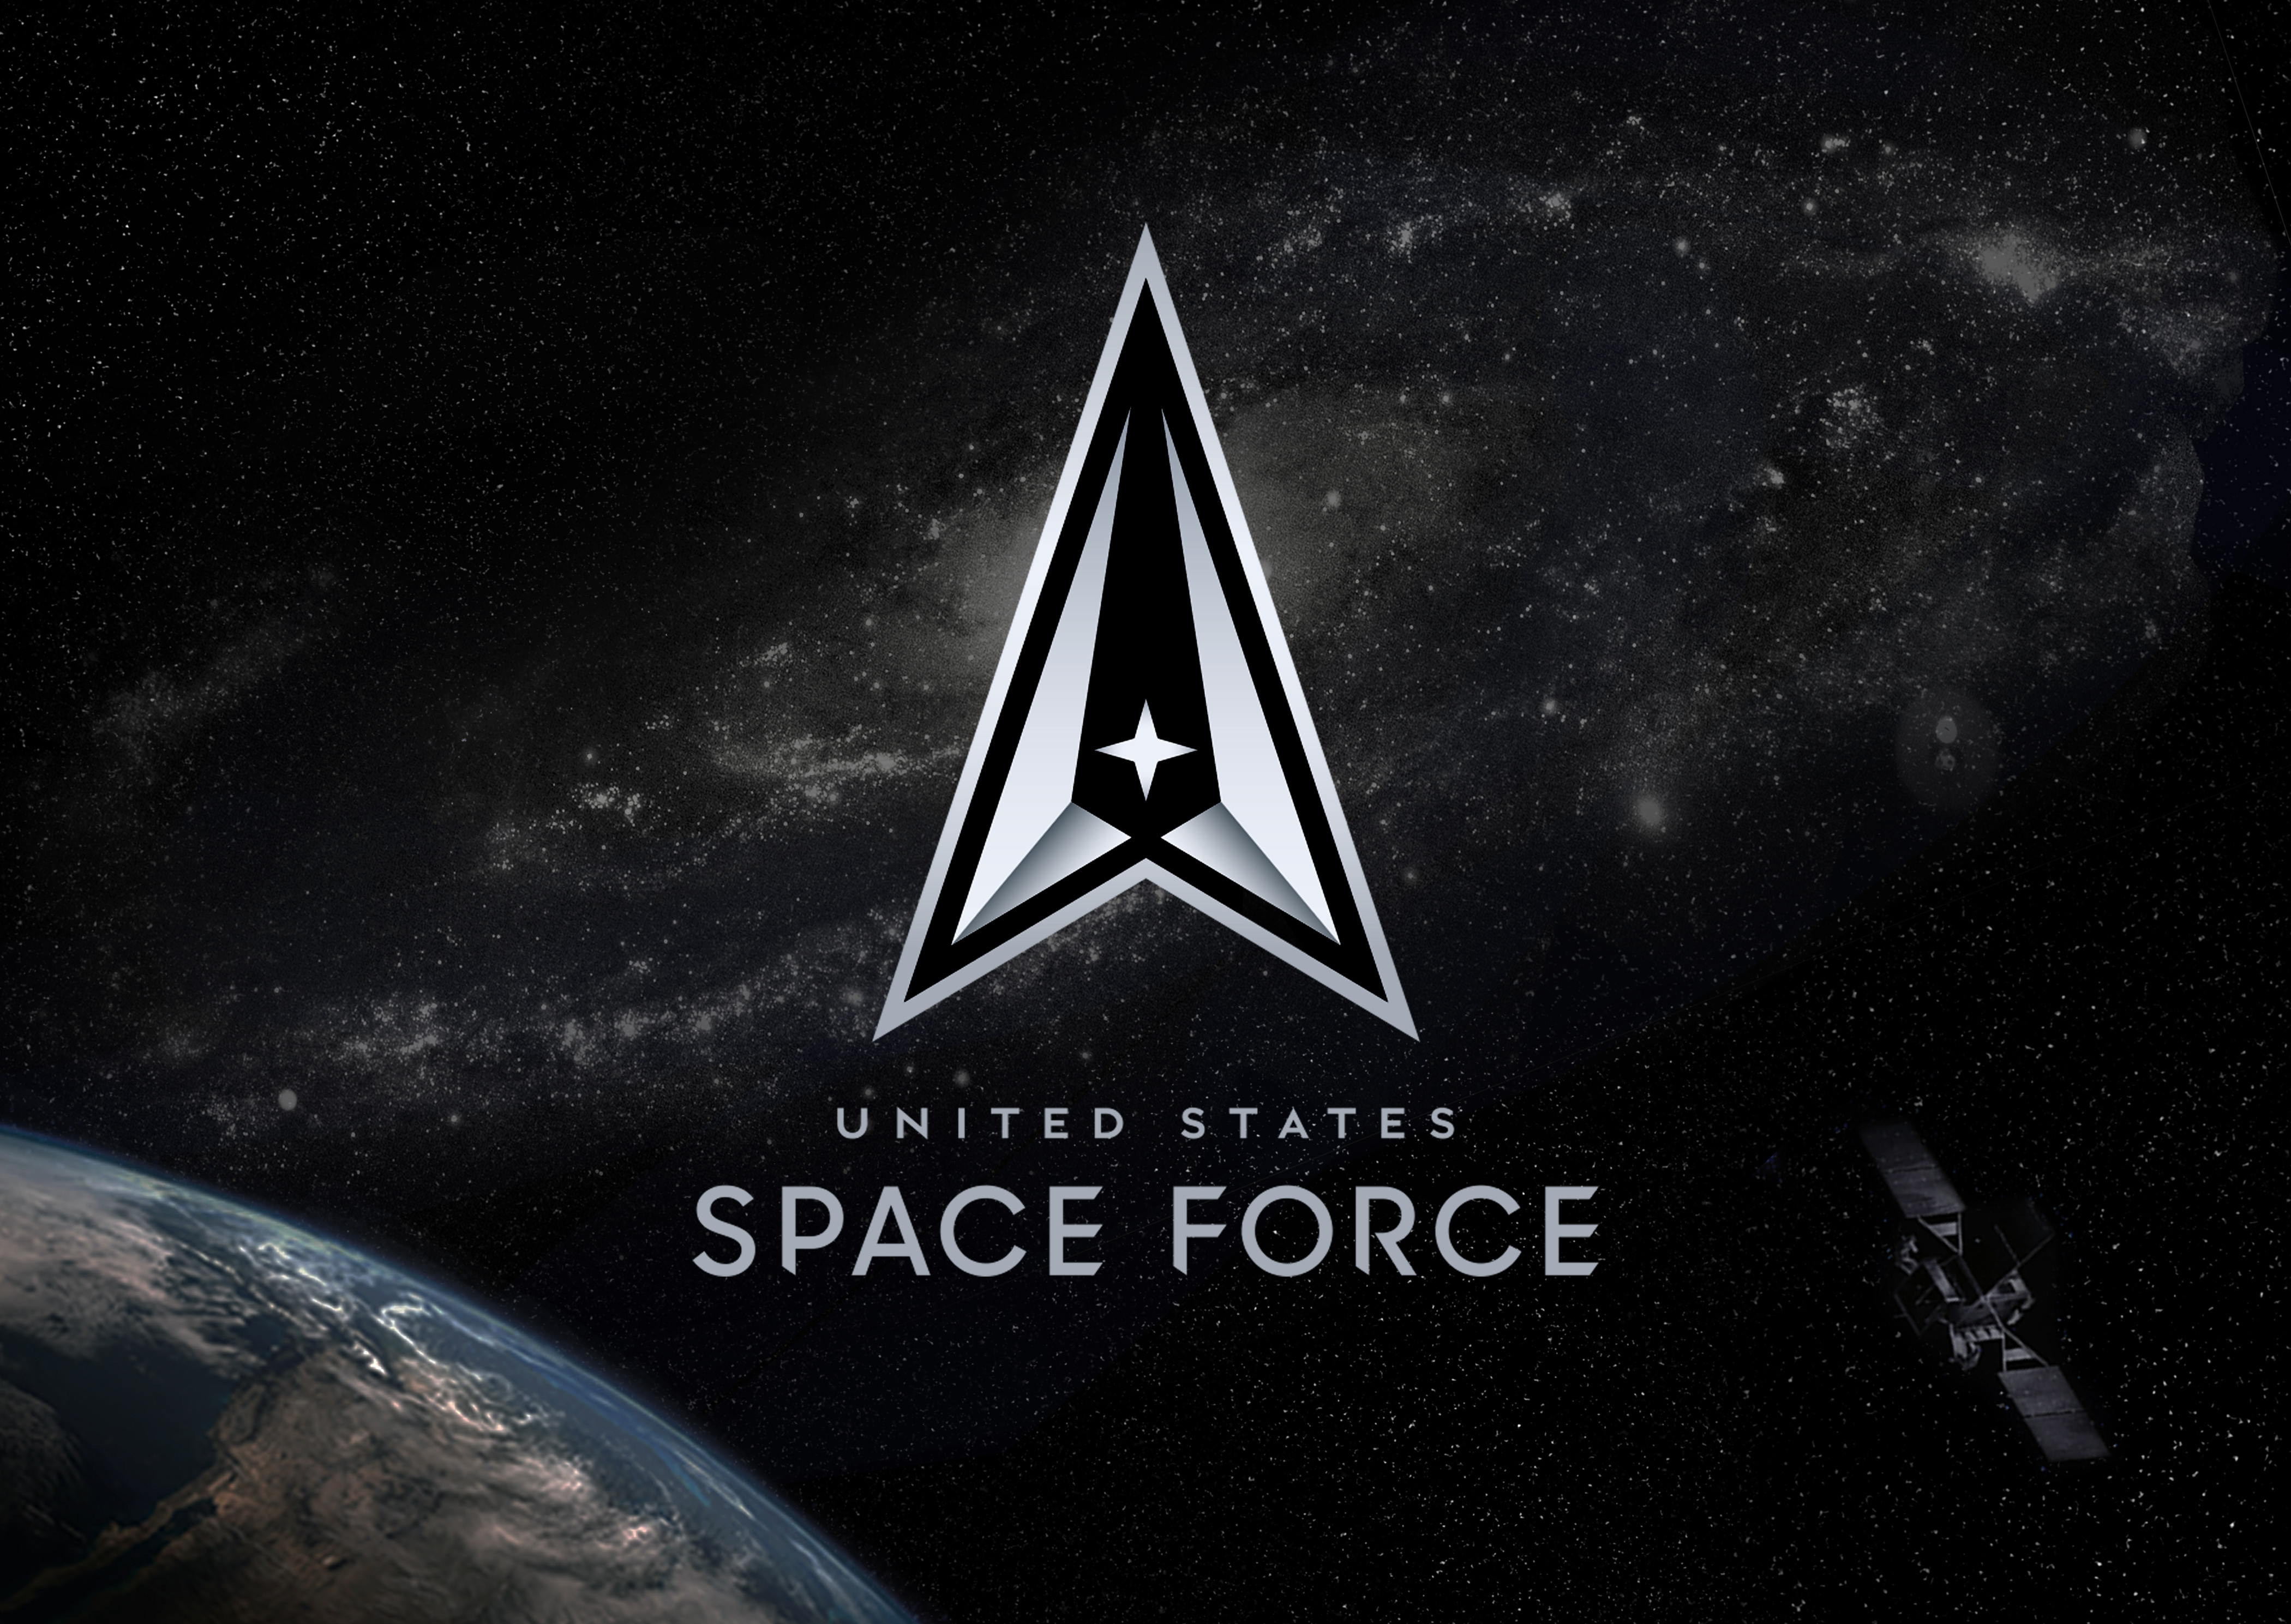 Space Force Blue Origin, Rocket Lab, SpaceX and ULA